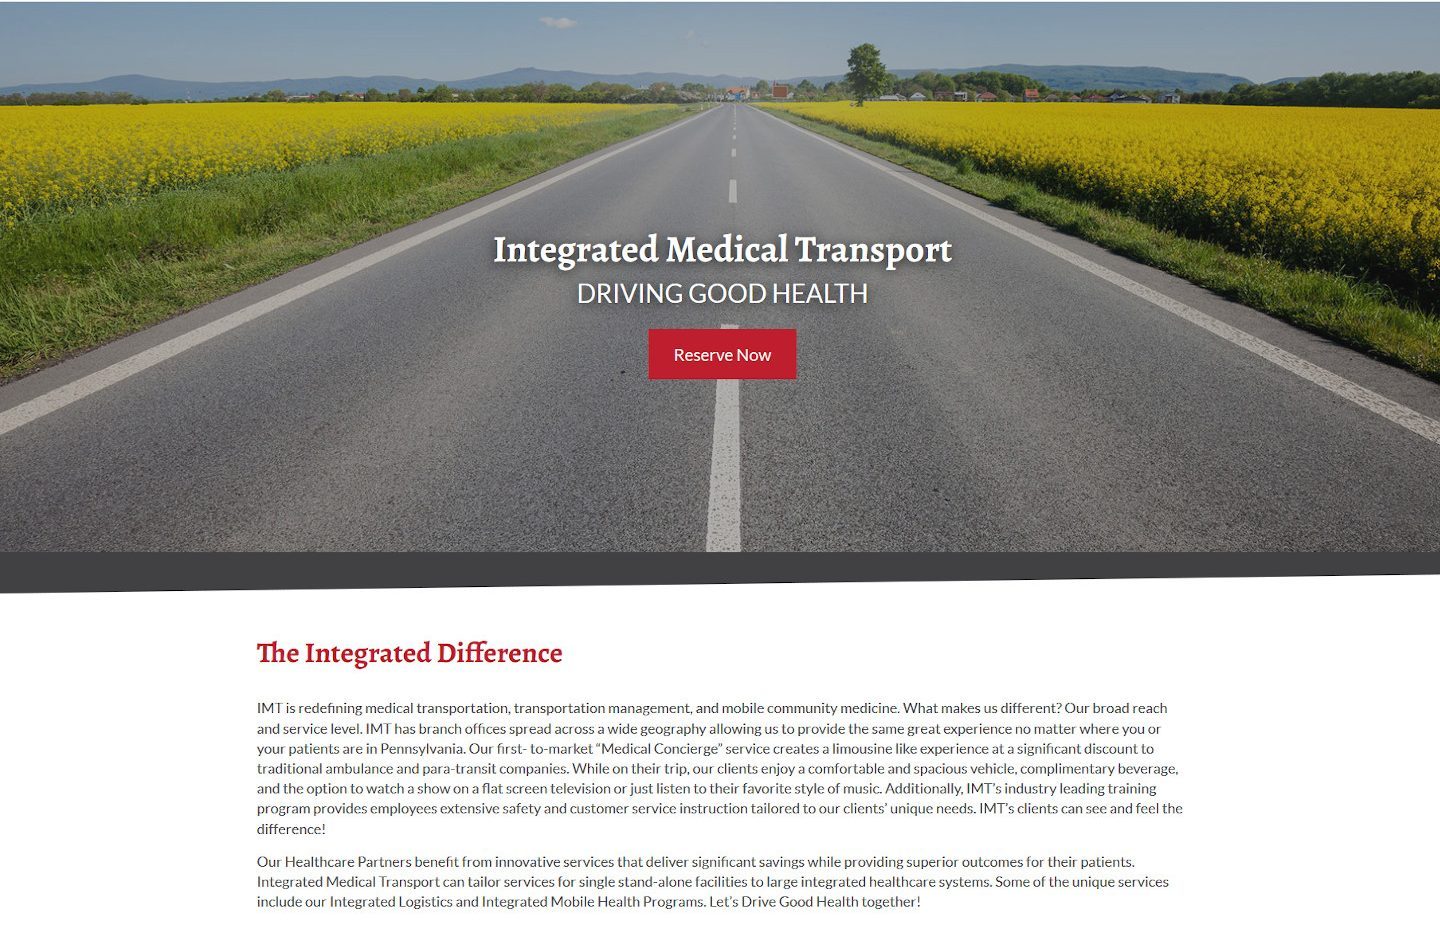 Integrated Medical Transport